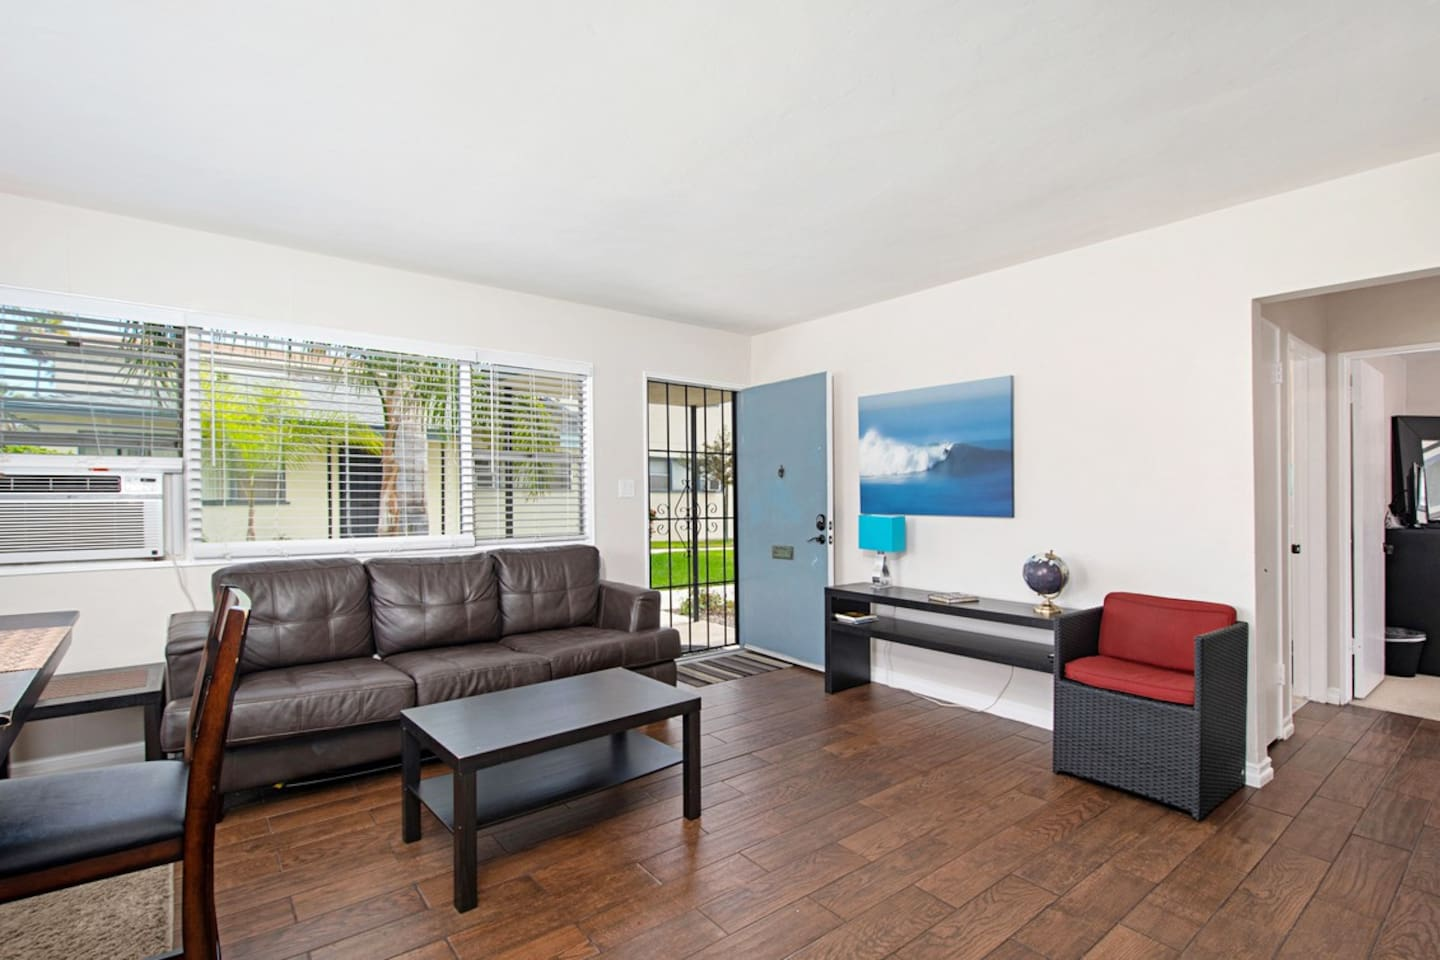 Wonderful, bright and open living room...and air conditioning!